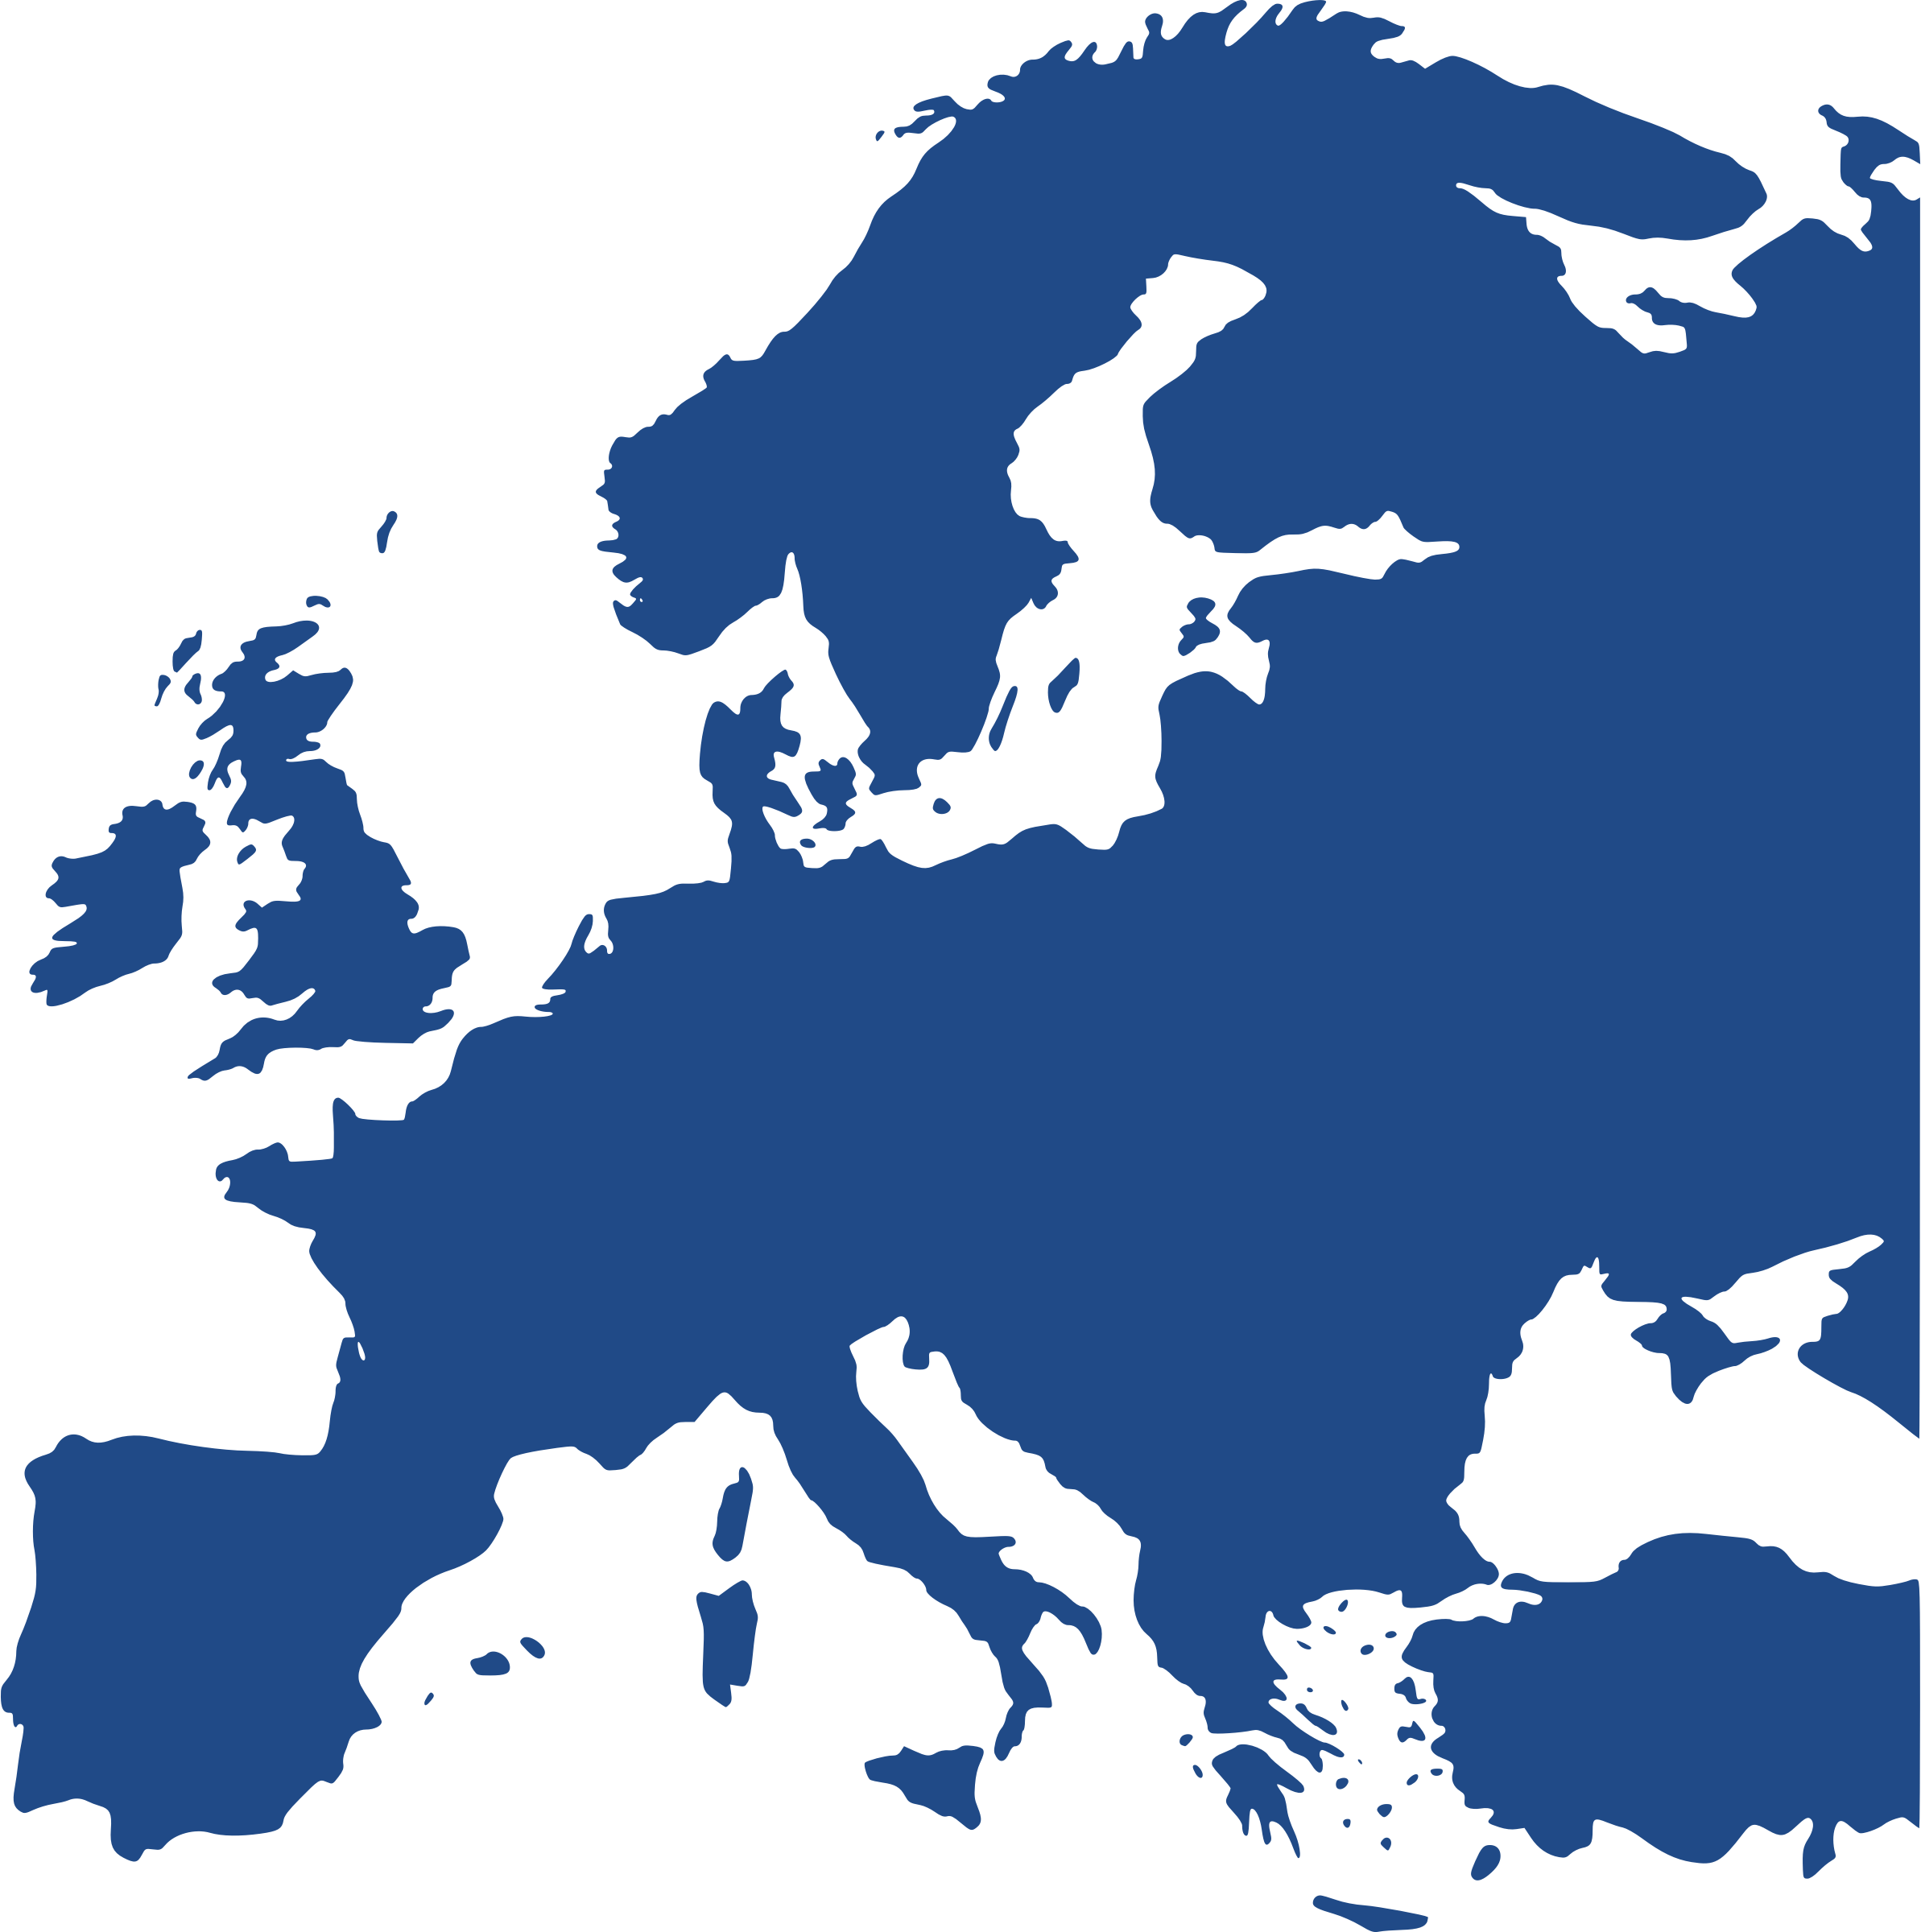 Map Of Europe Equidistant-Map Of Europe Equidistant-2